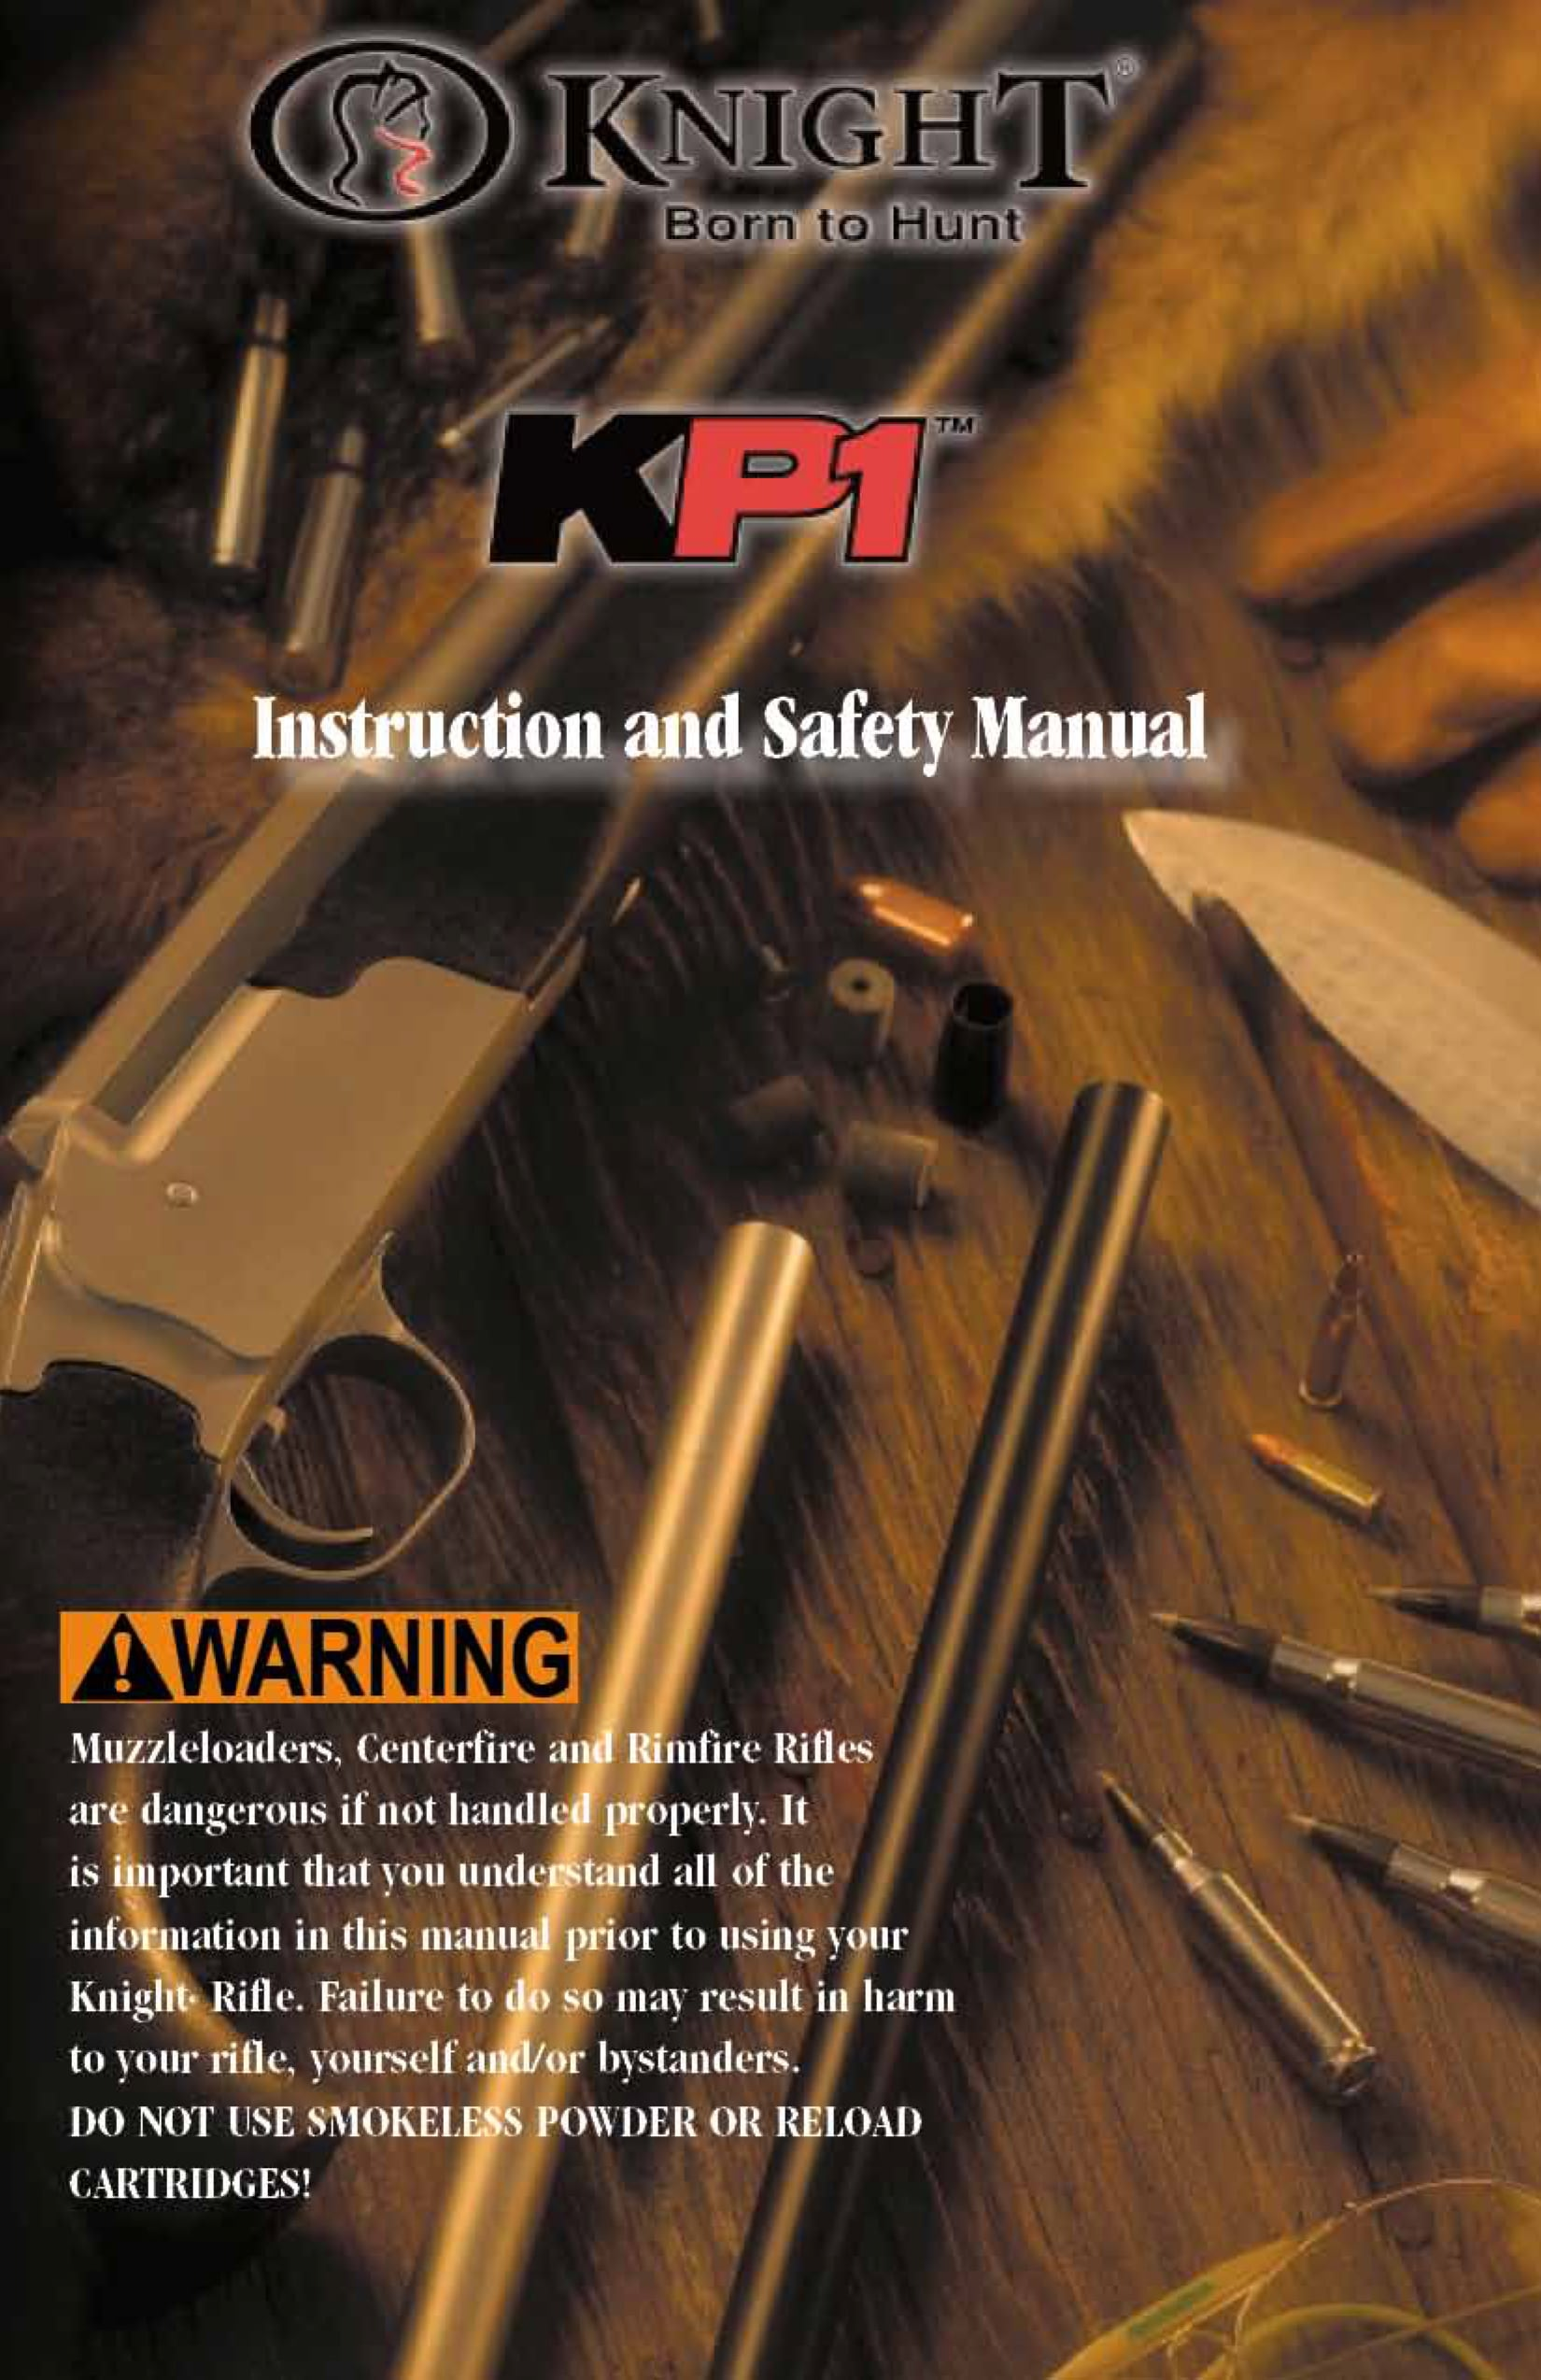 Knight Owners Manuals for Muzzleloader Rifles - Knight Rifles